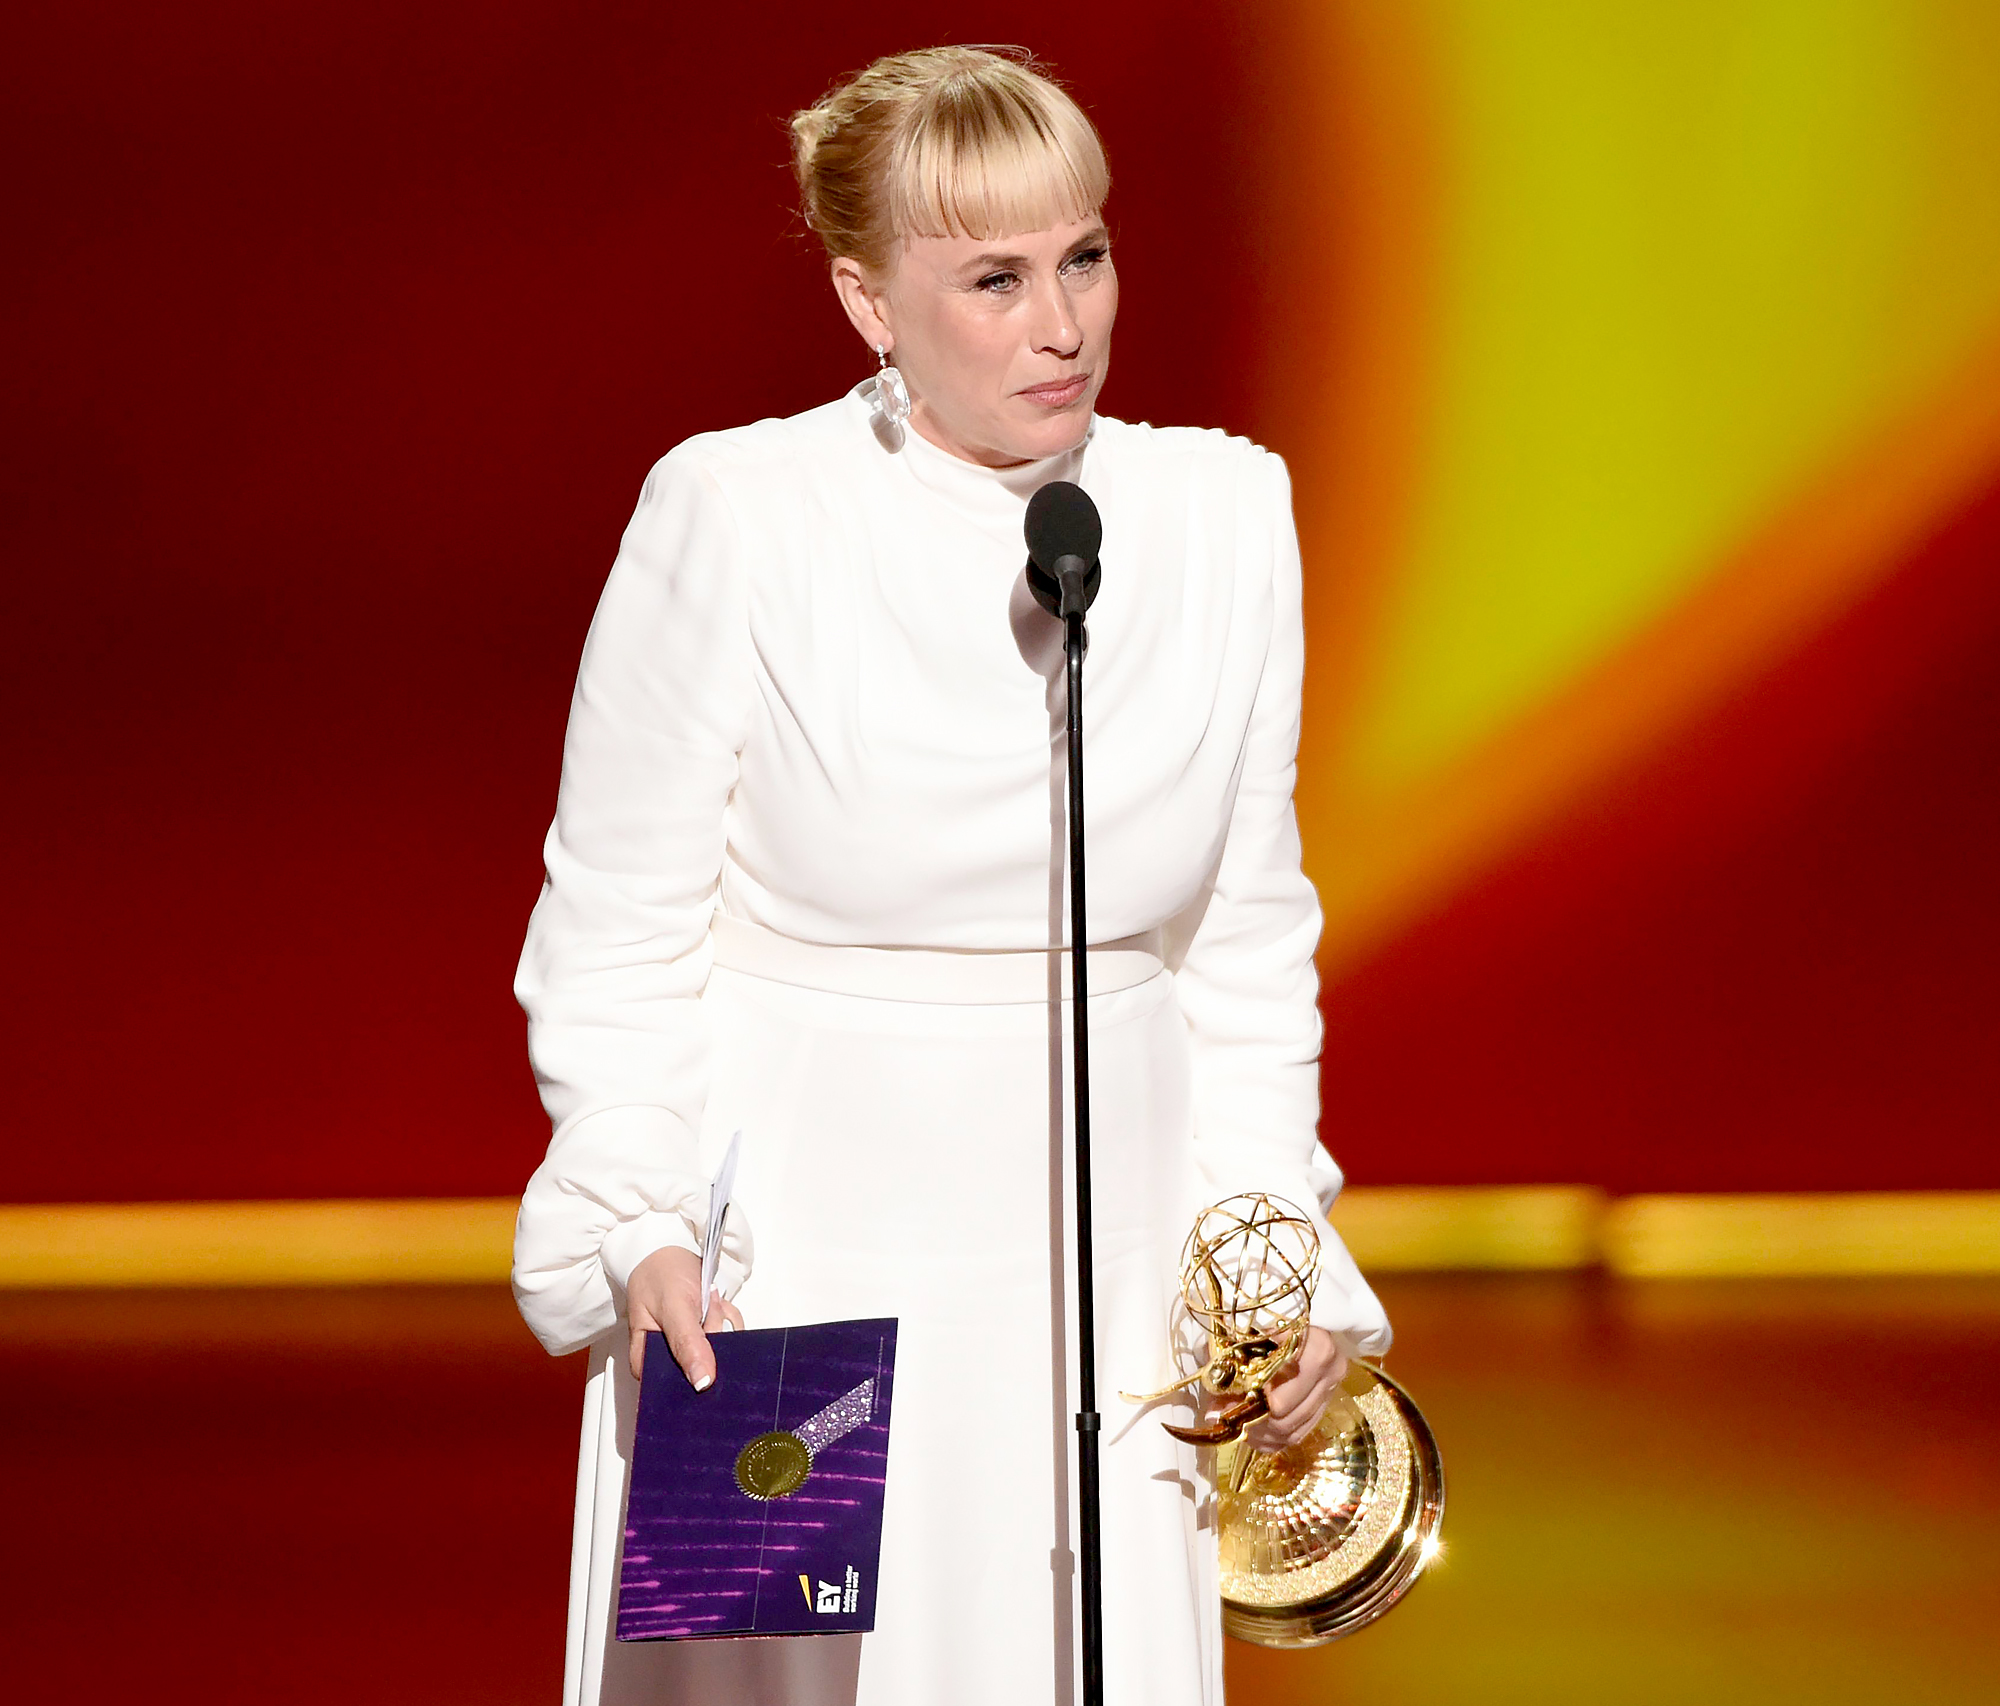 Patricia-Arquette-Tears-Up-Over-Late-Sister-Emmys-2019